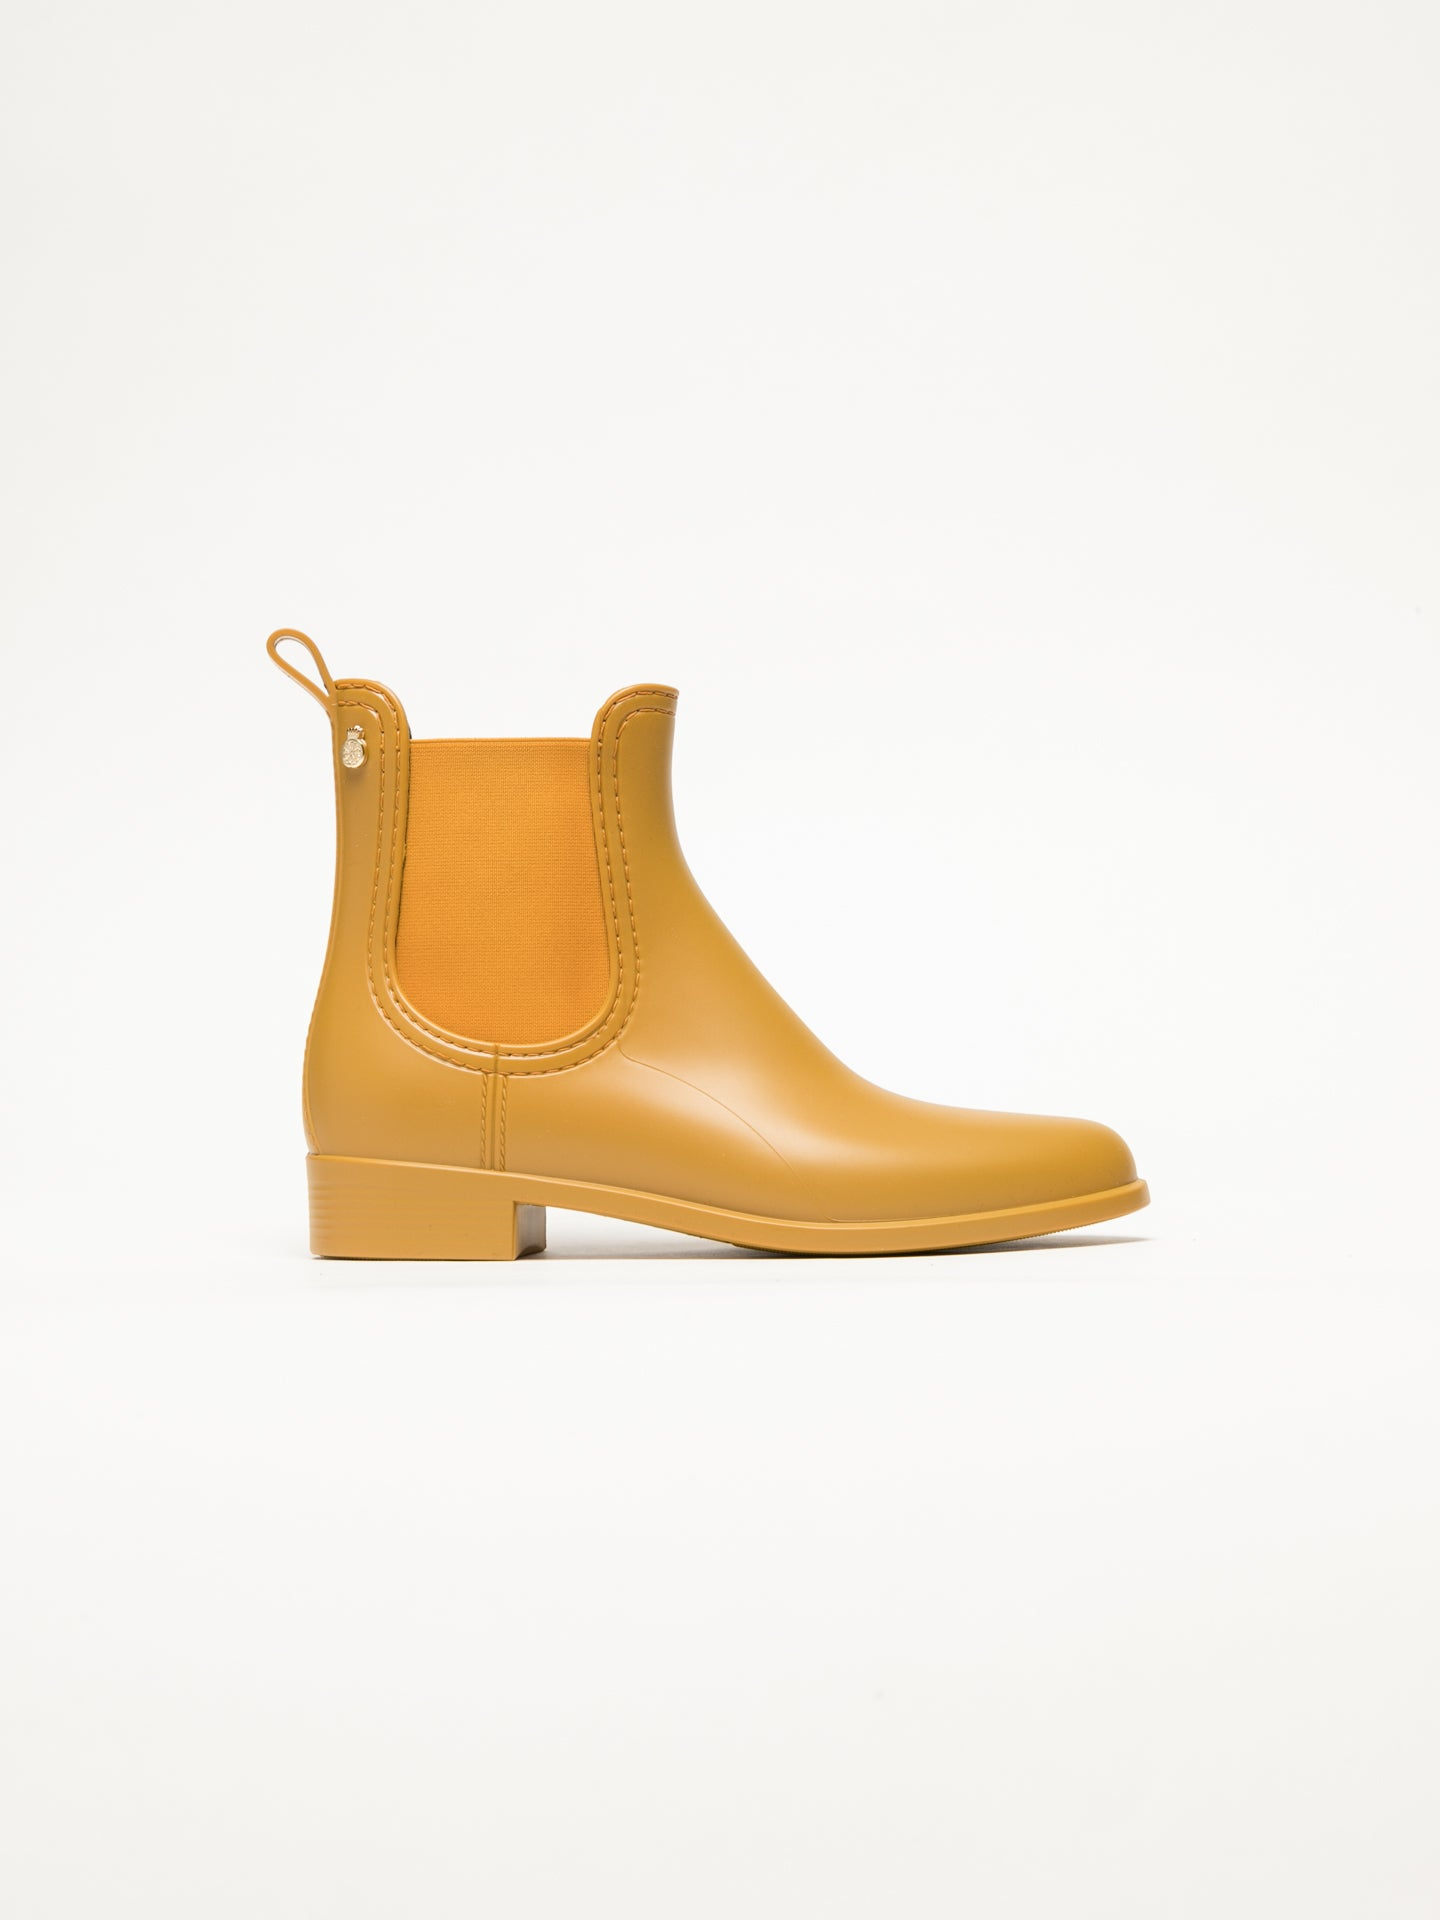 Lemon Jelly Stiefeletten im Chelsea-Stil in Orange